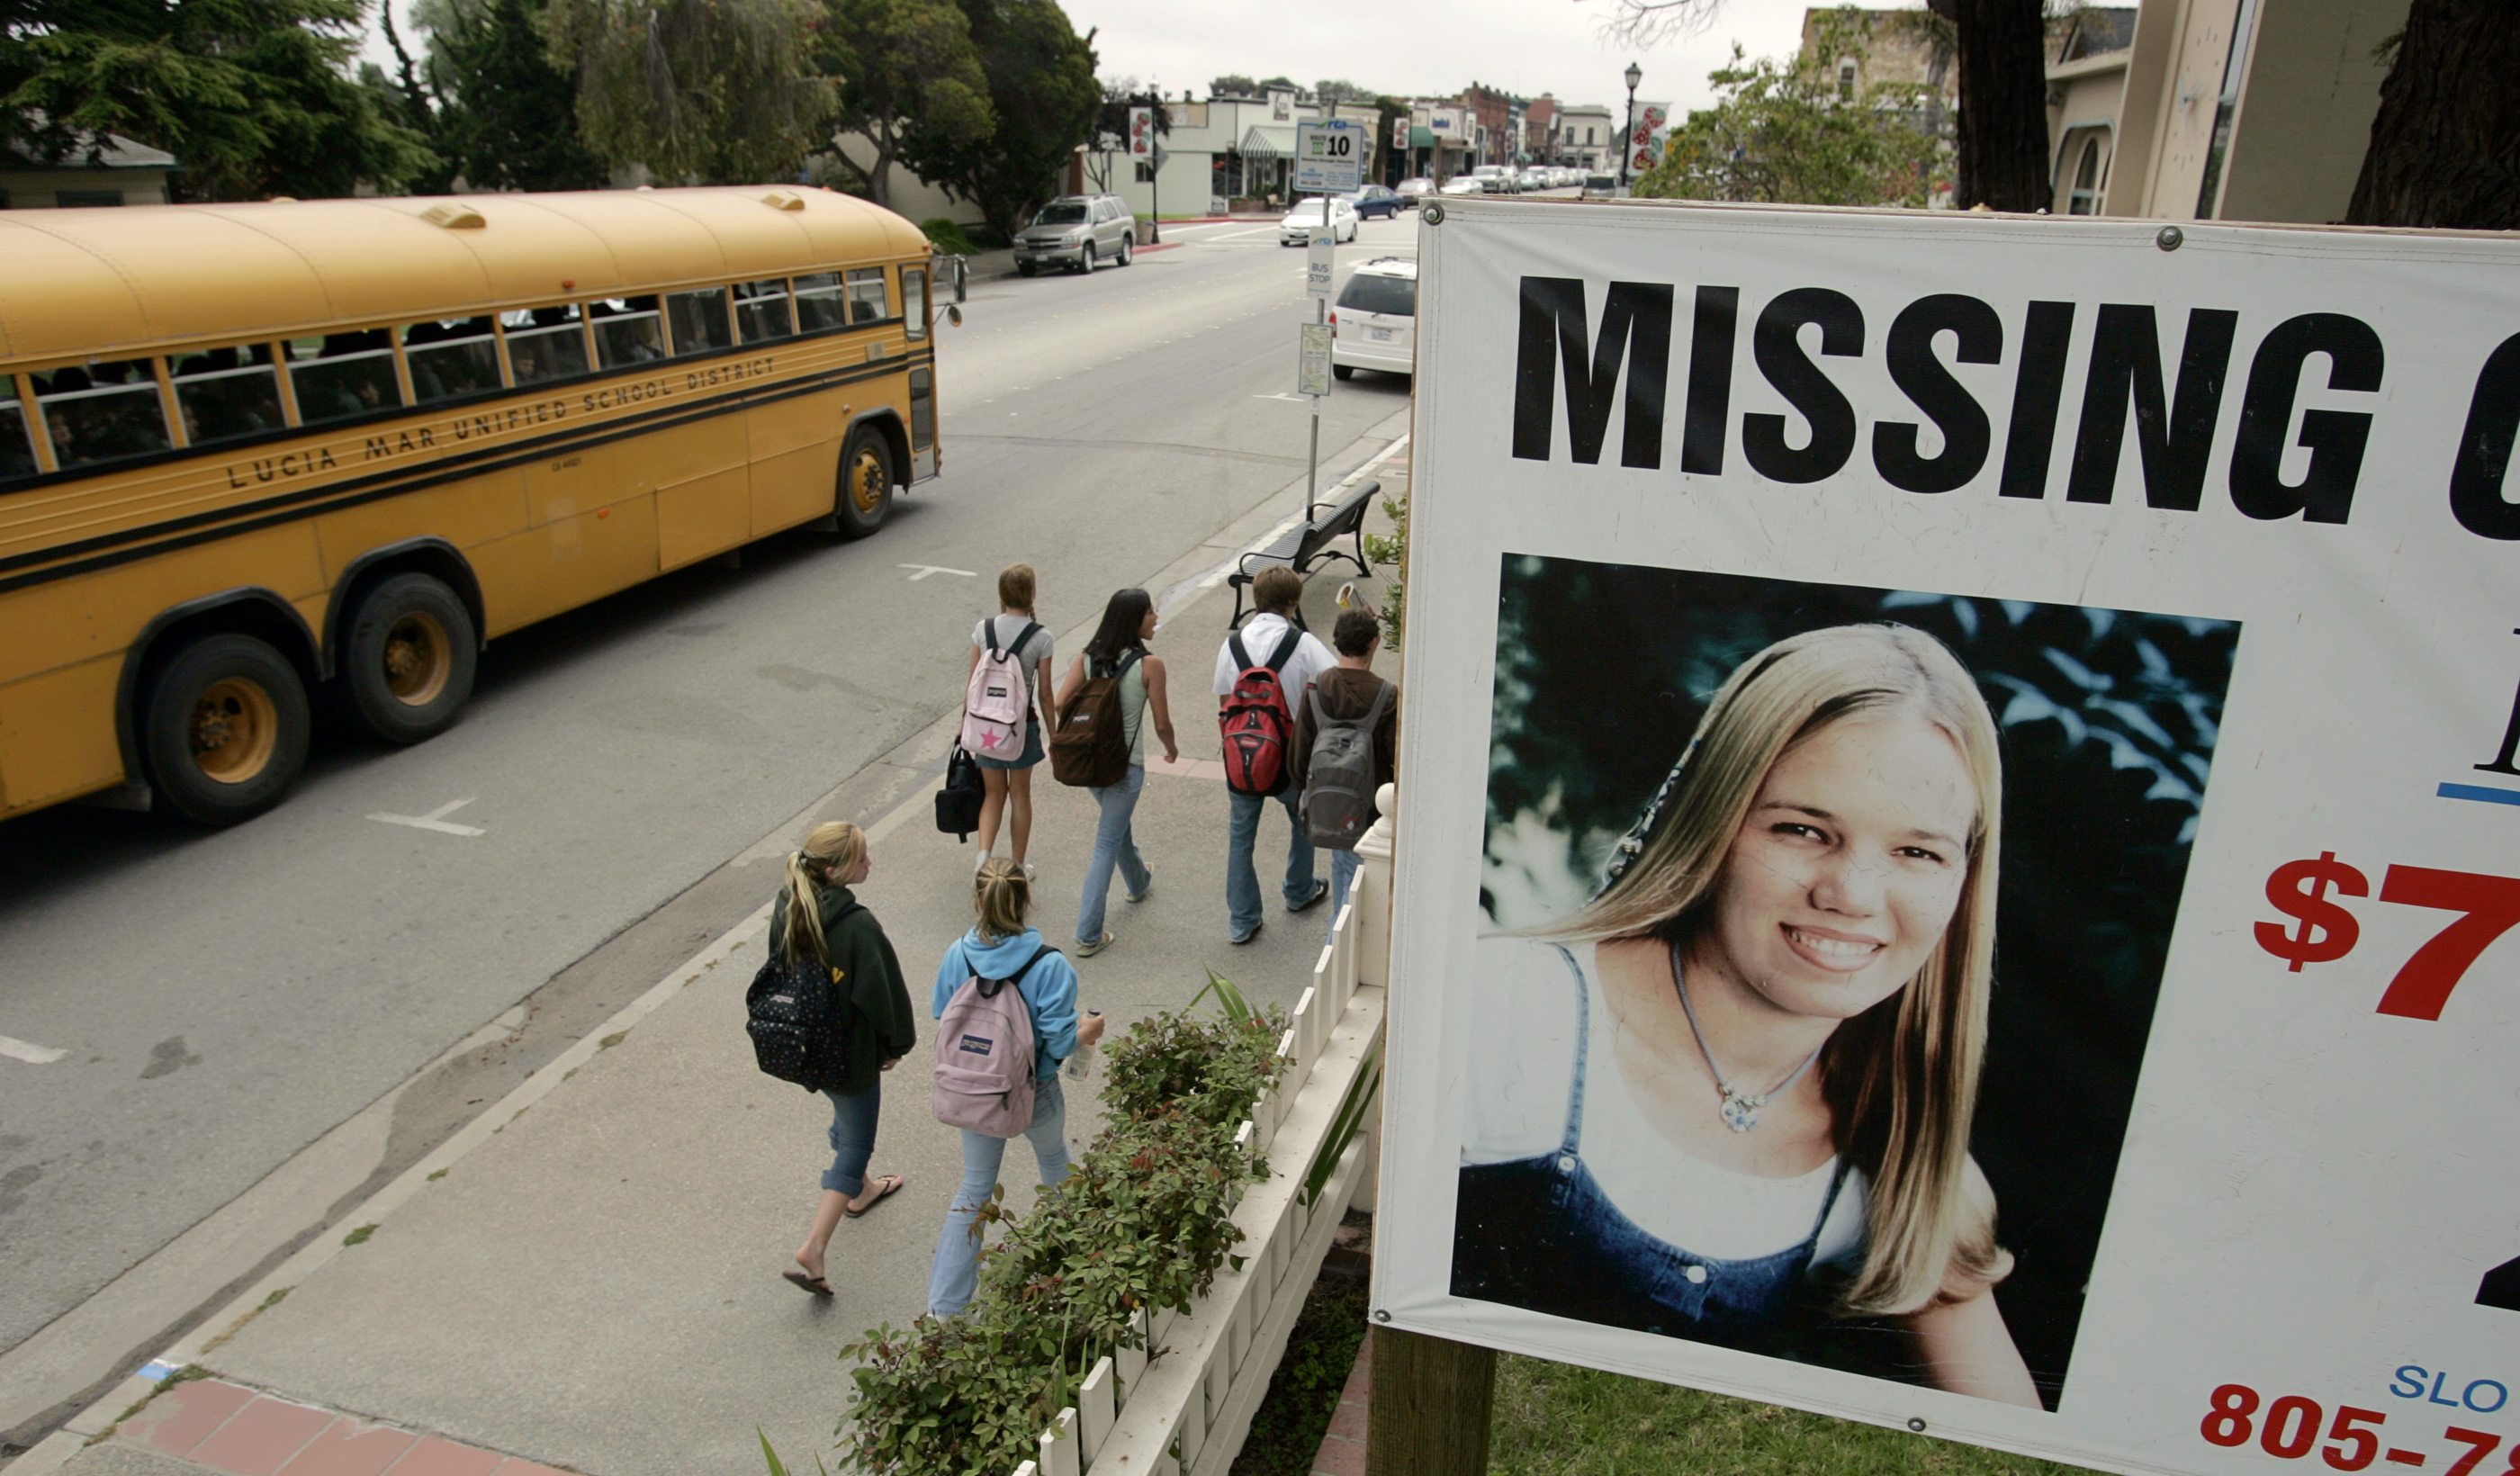 Just across the East Branch Street, from city hall, in the California central coast town of Arroyo Grande, is this sign that helps with public awareness in case involving MISSING Cal Poly San Luis Obispo student Kristin Smart. Kristen was in her first year at Cal Poly when she vanished in 1996.